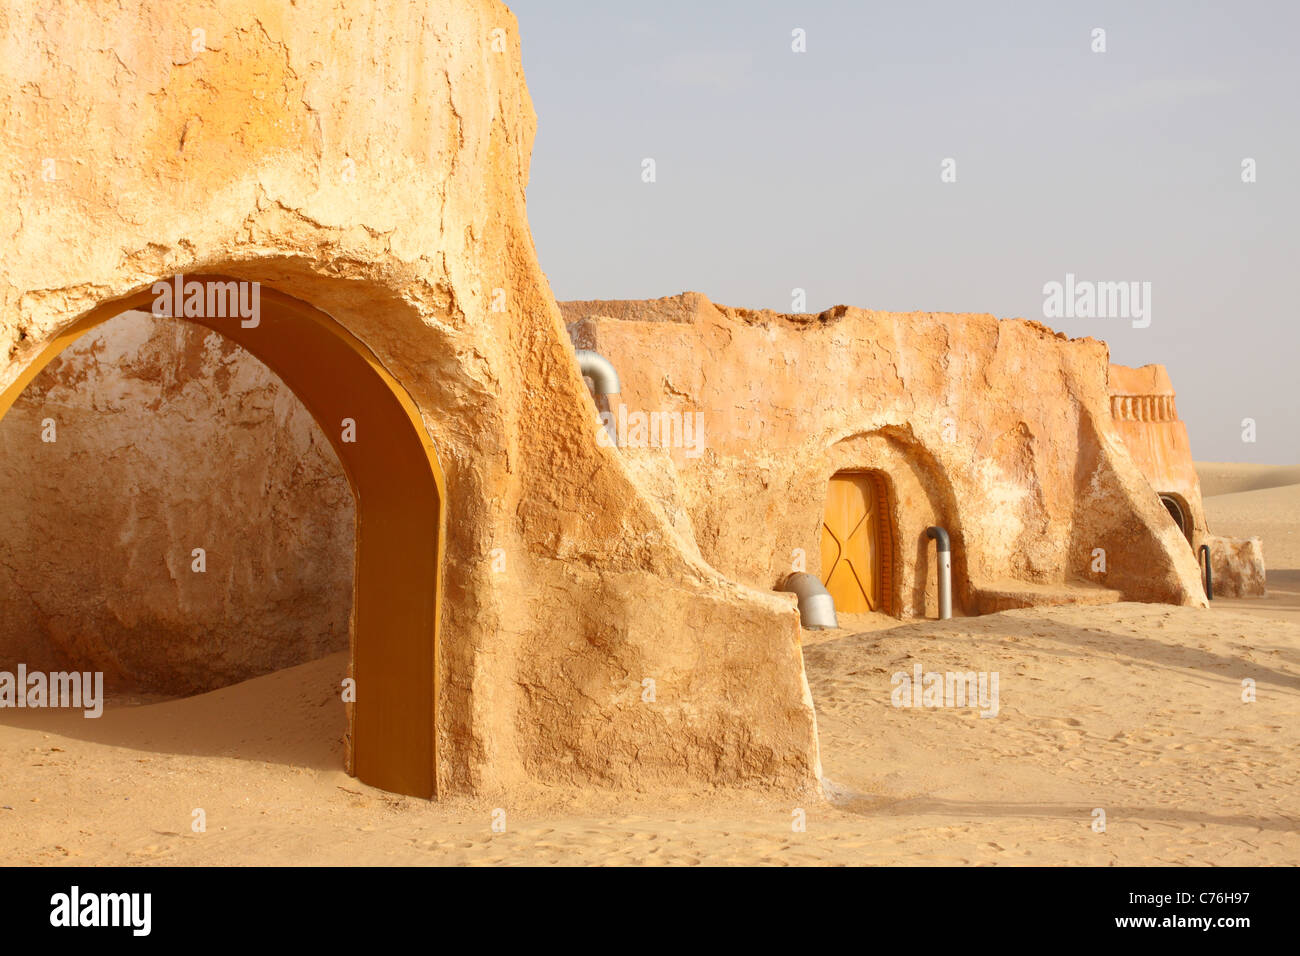 The scenery for the movie Star Wars in Tunisia - Stock Image